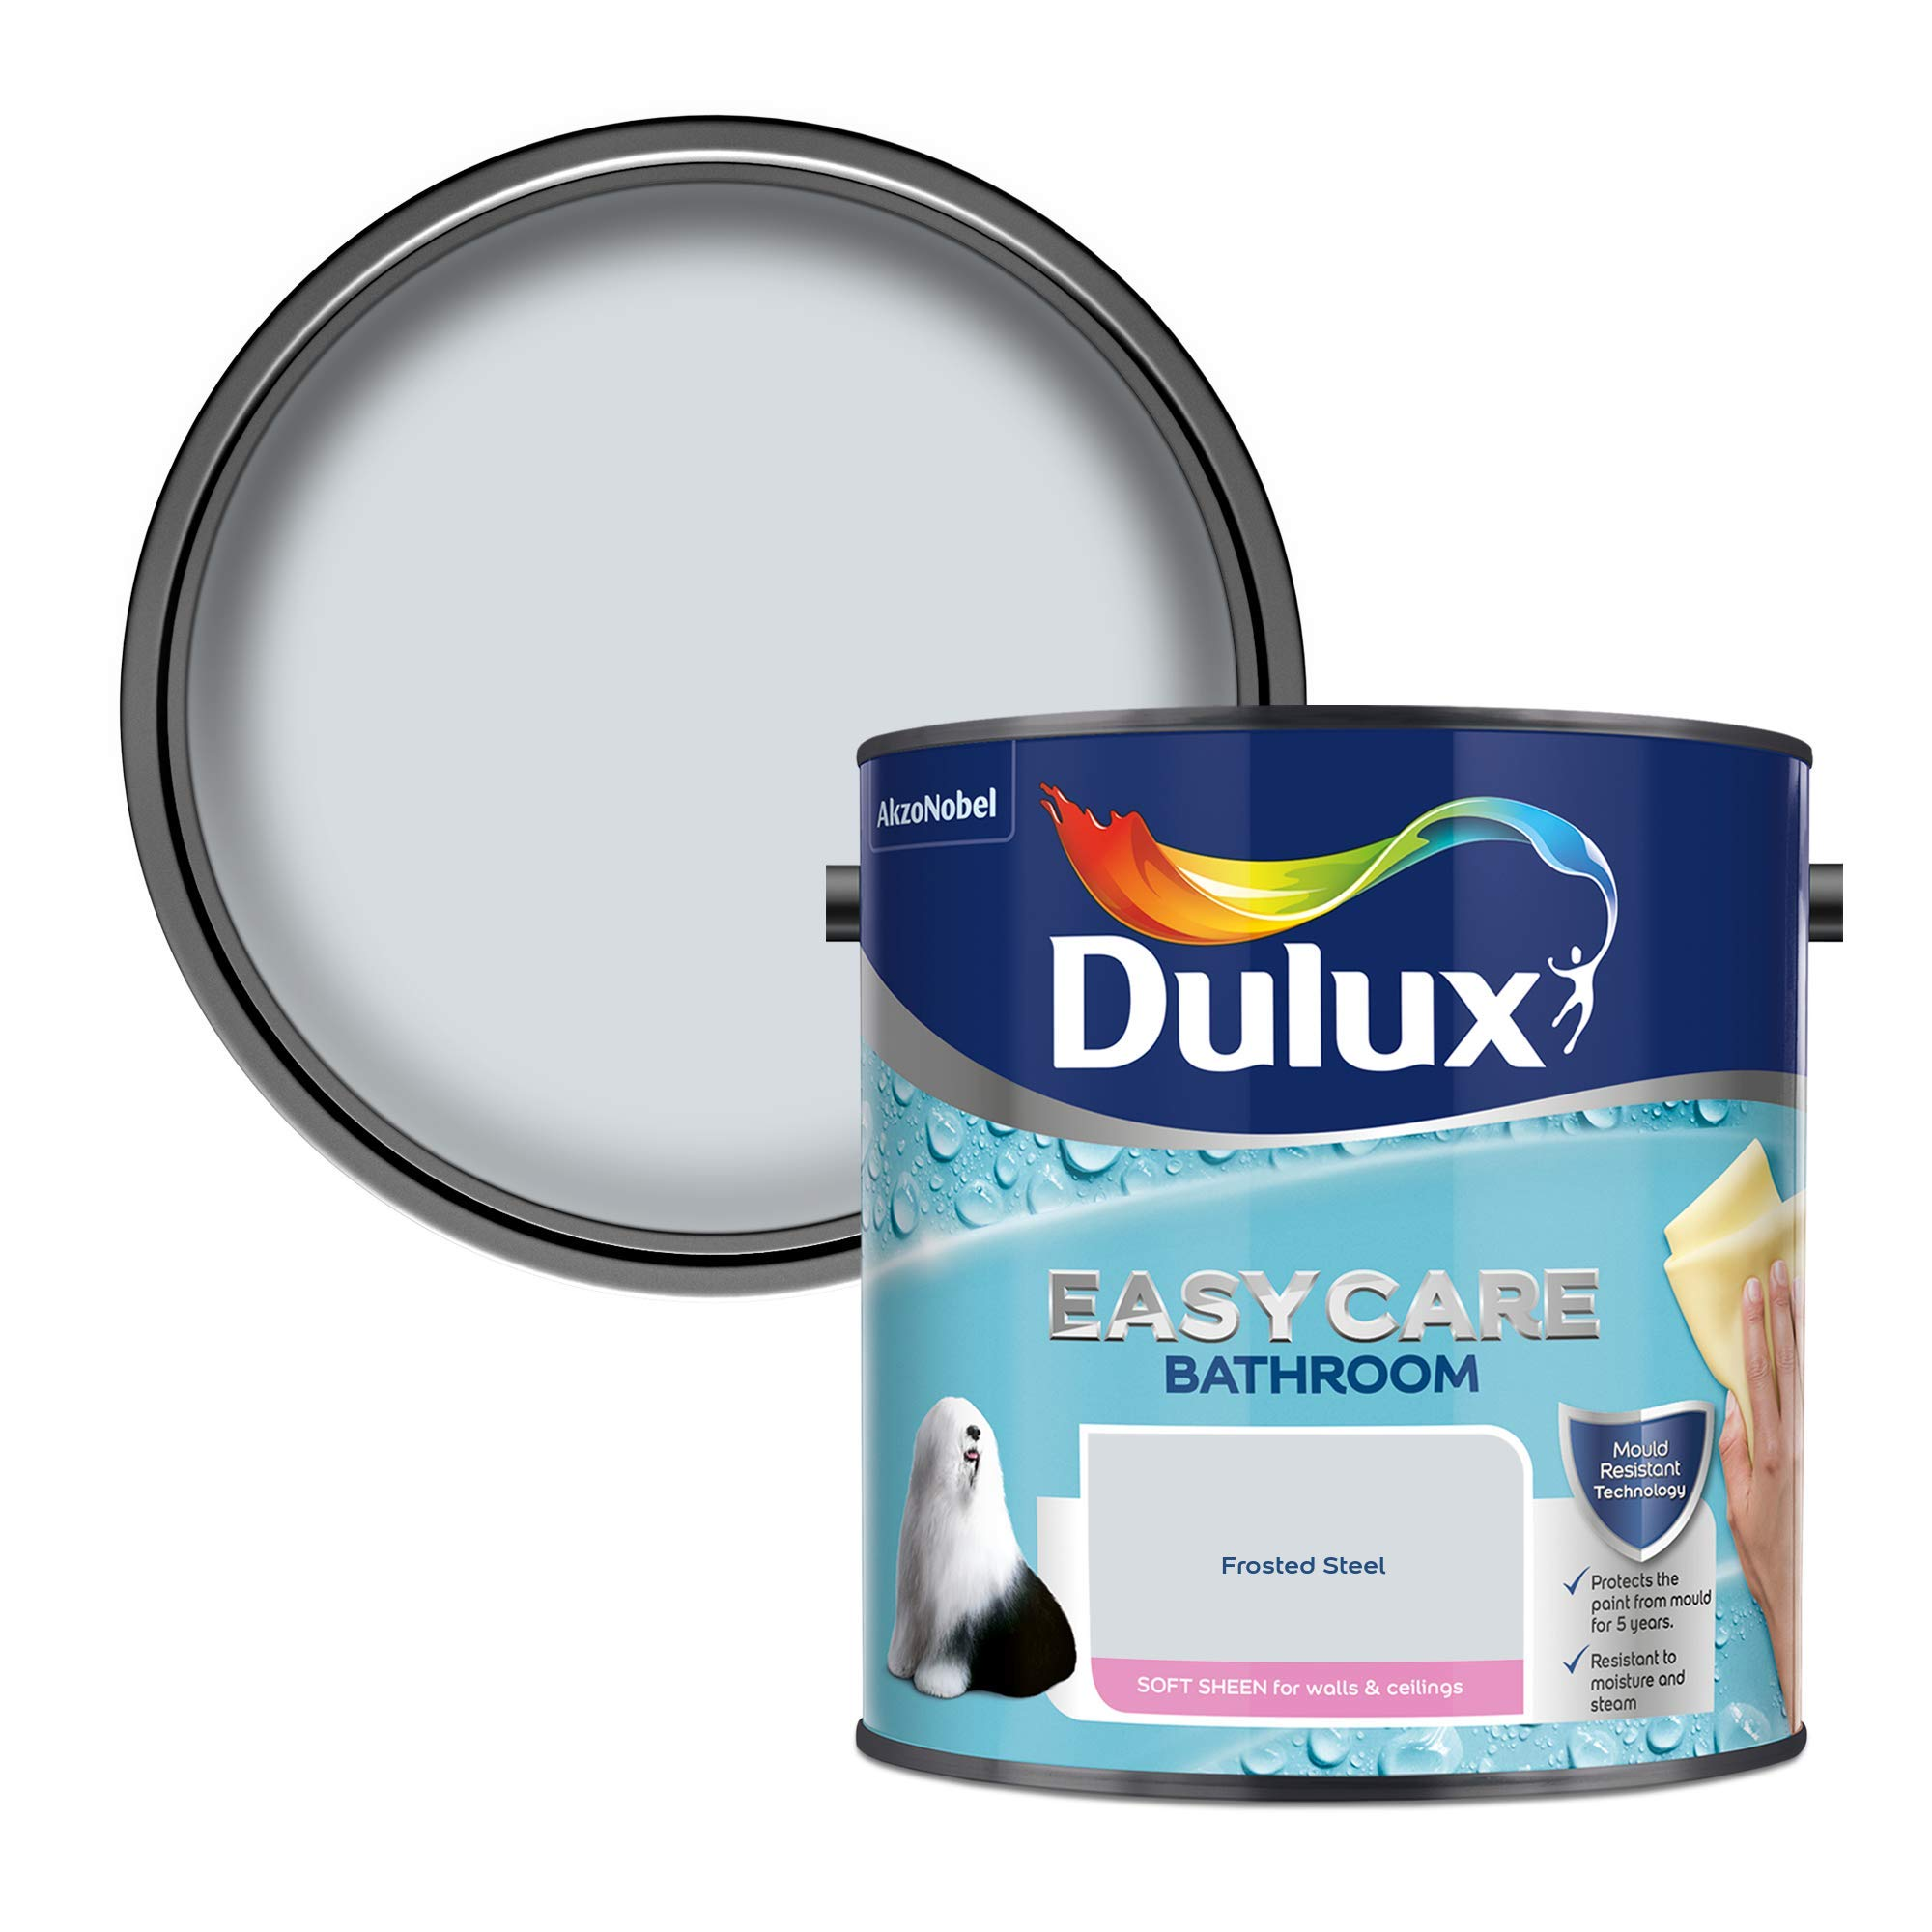 Dulux 500001 Easycare Bathroom Soft Sheen Emulsion Paint For Walls And Ceilings - Frosted Steel 2. 5 Litres